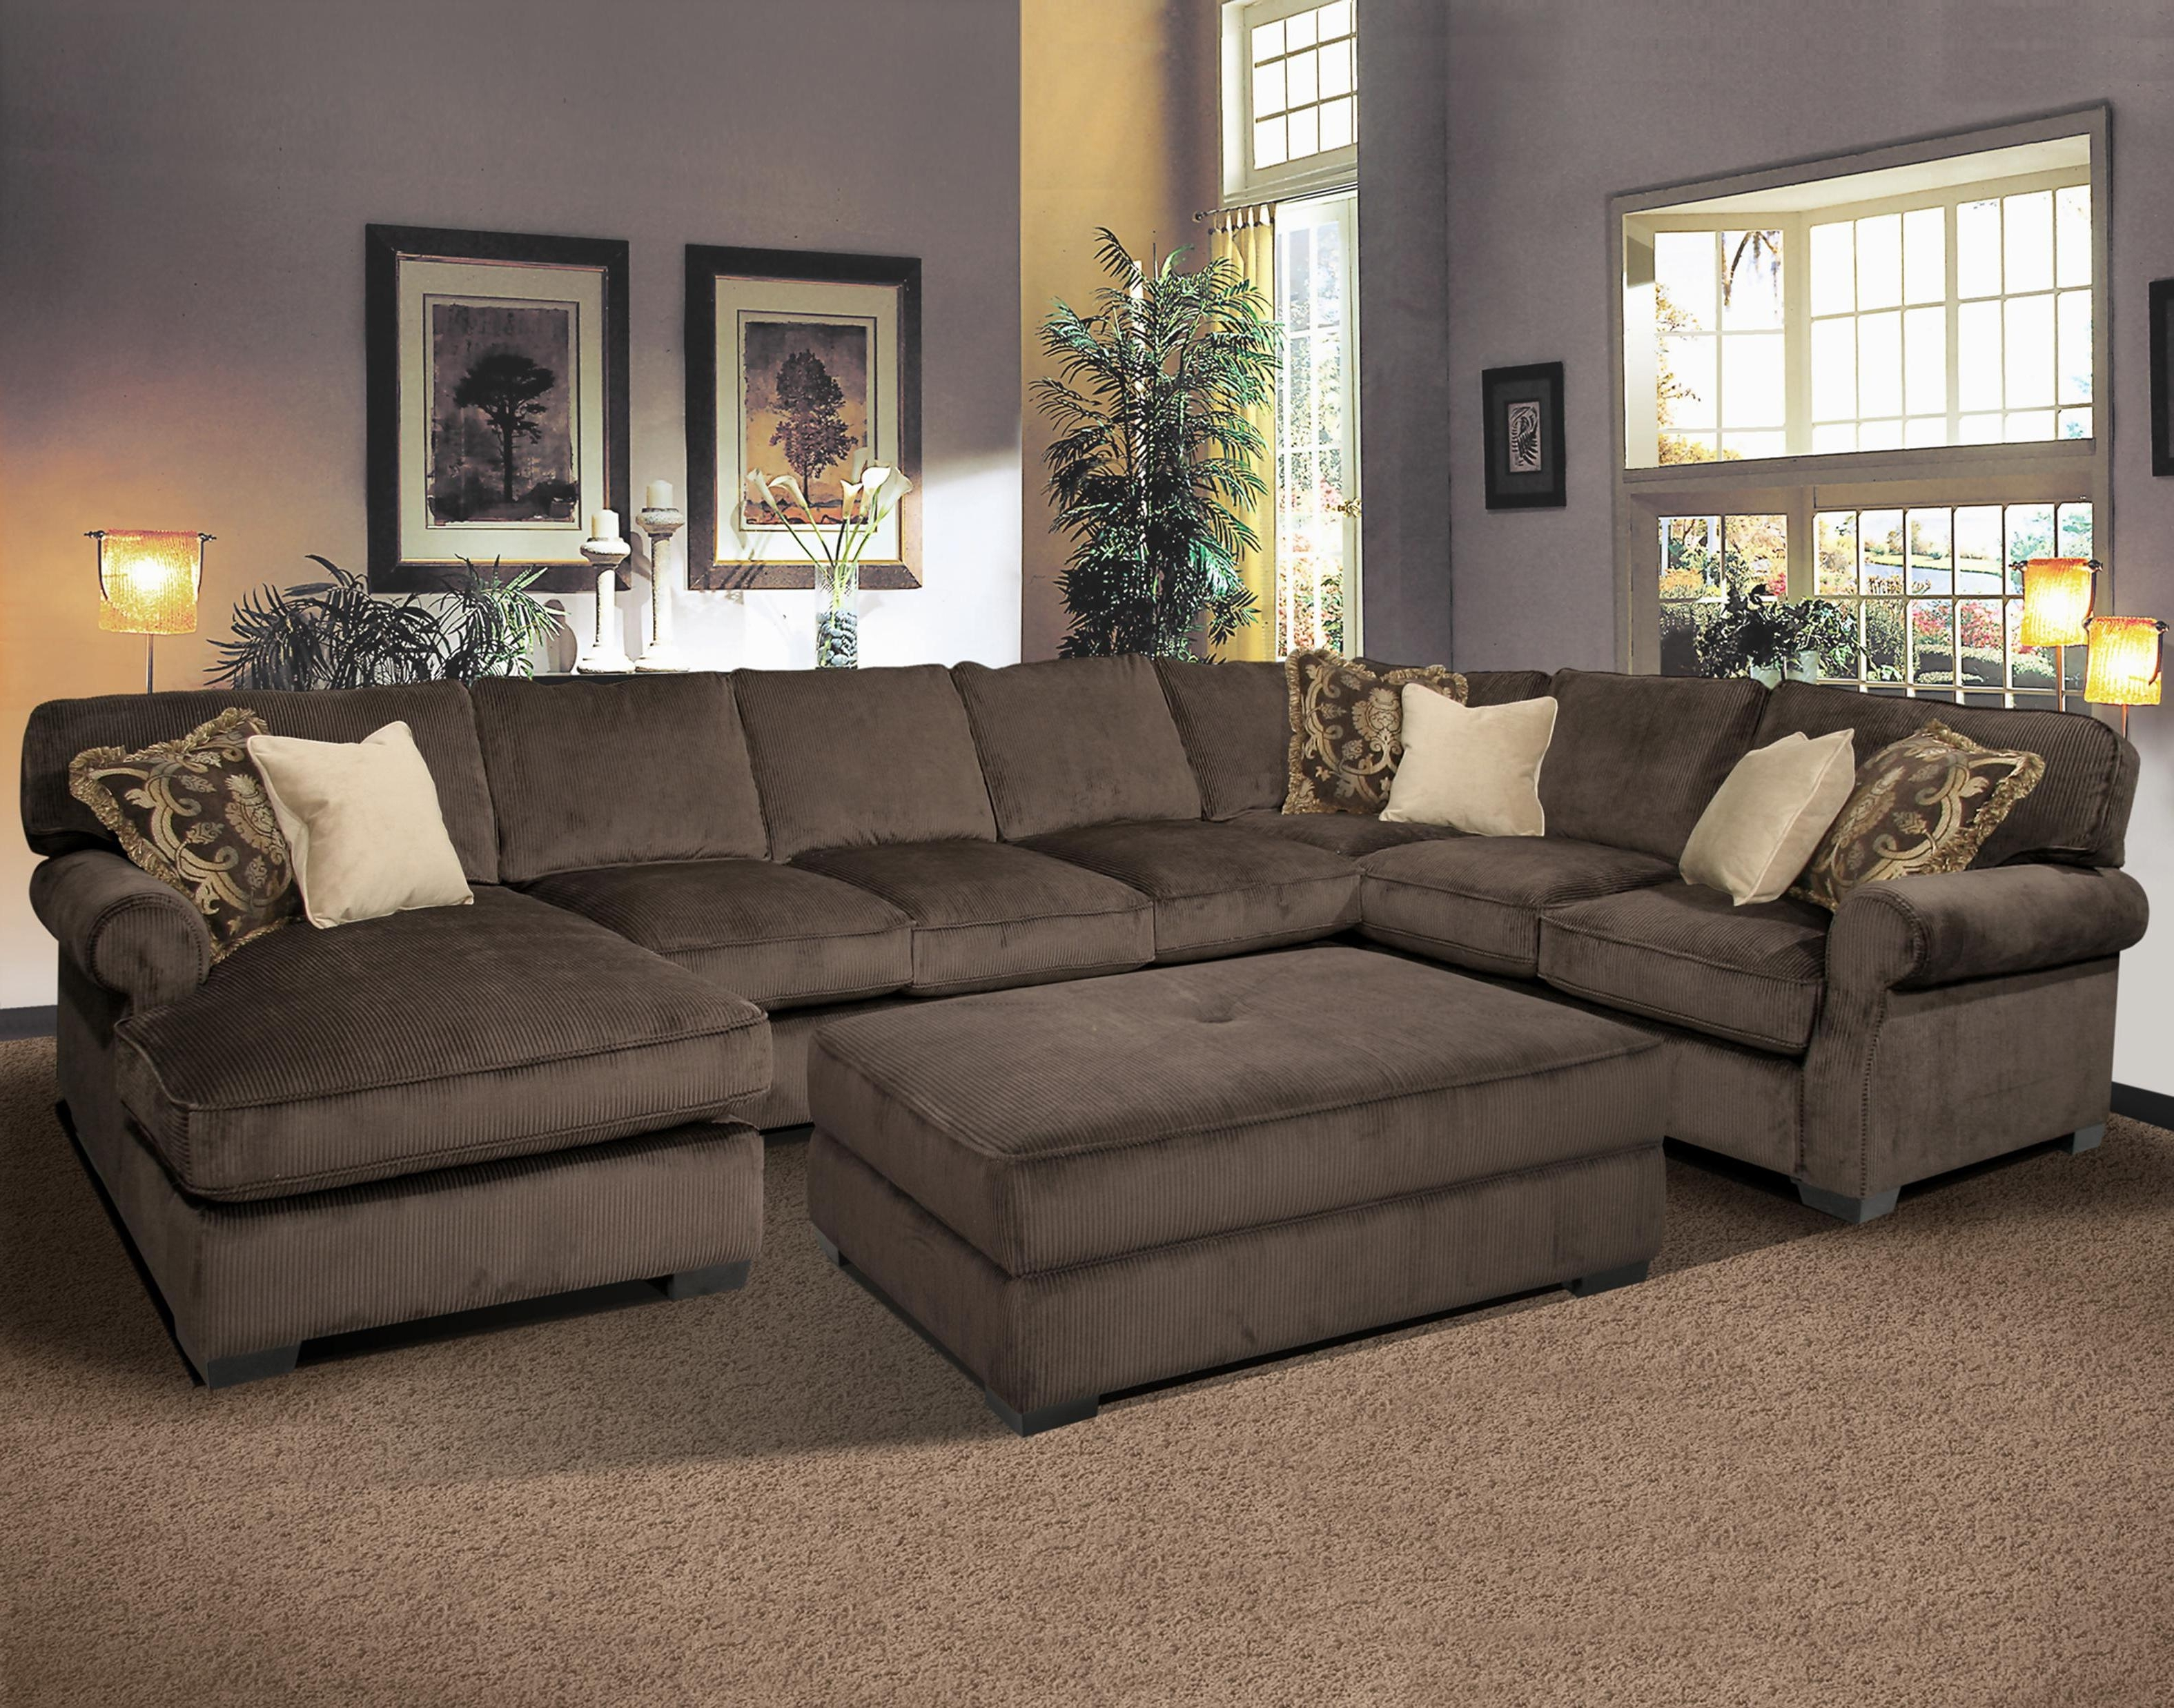 gh tempting set to black scenic outstanding slipcover loveseat sofas along lear with sectionals sofa tufted rooms sectionalss reclining hd including sectional trends go